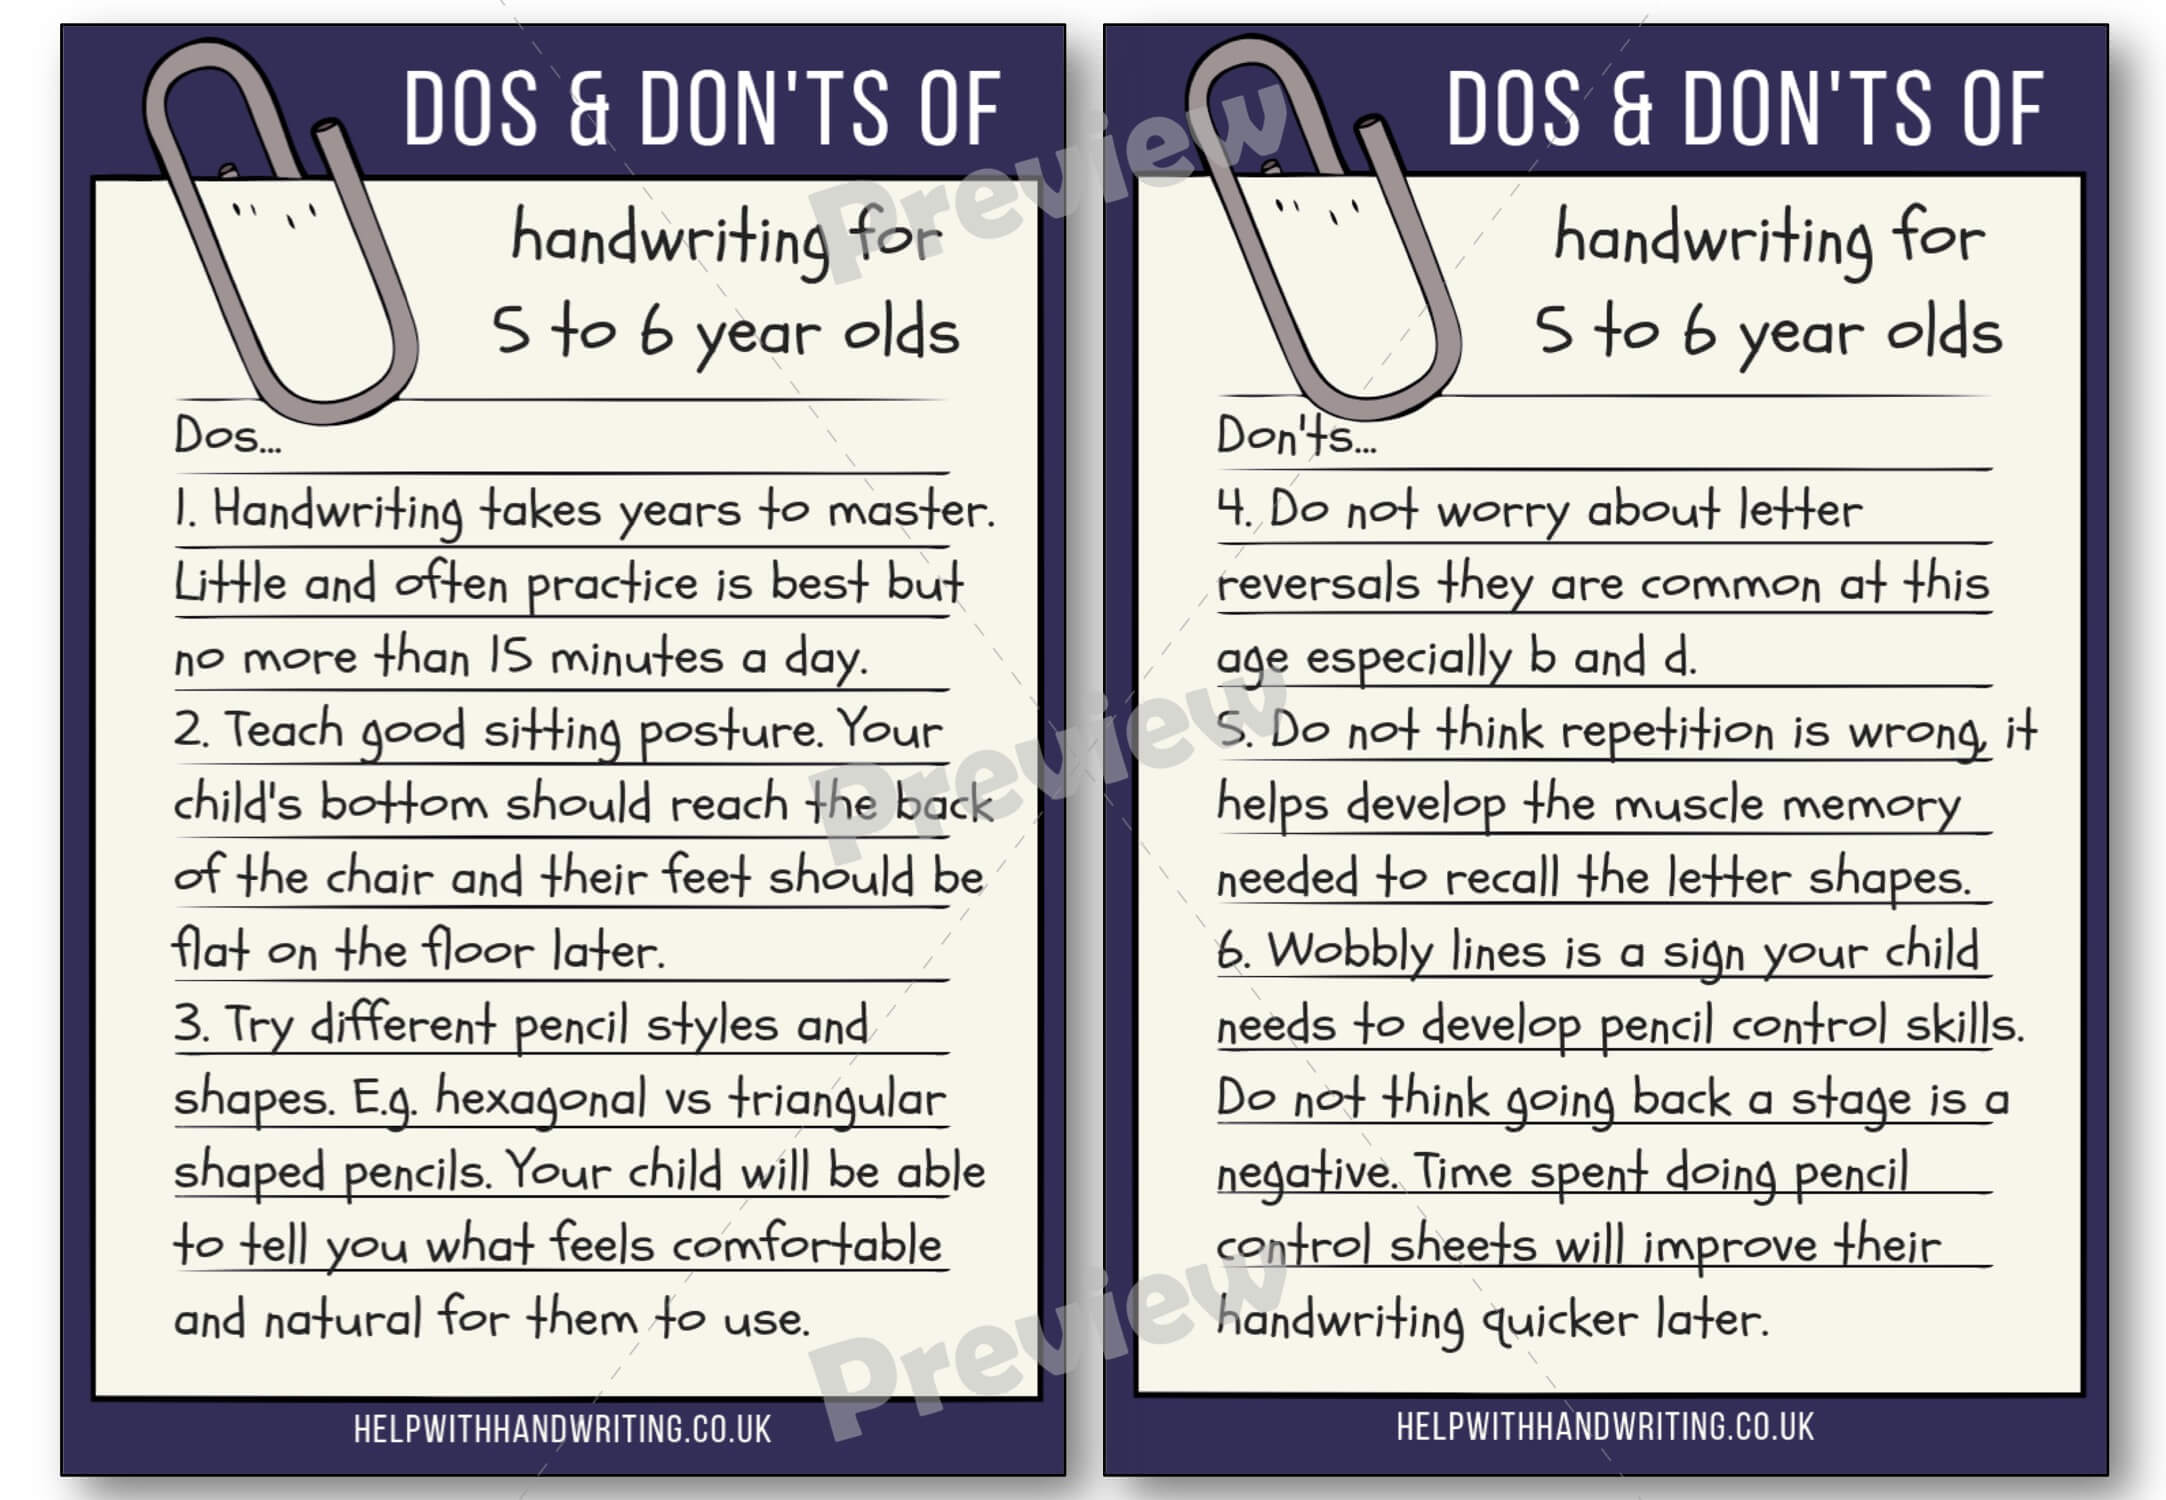 Handwriting dos and don'ts for 5 to 6 years Preview image worksheet